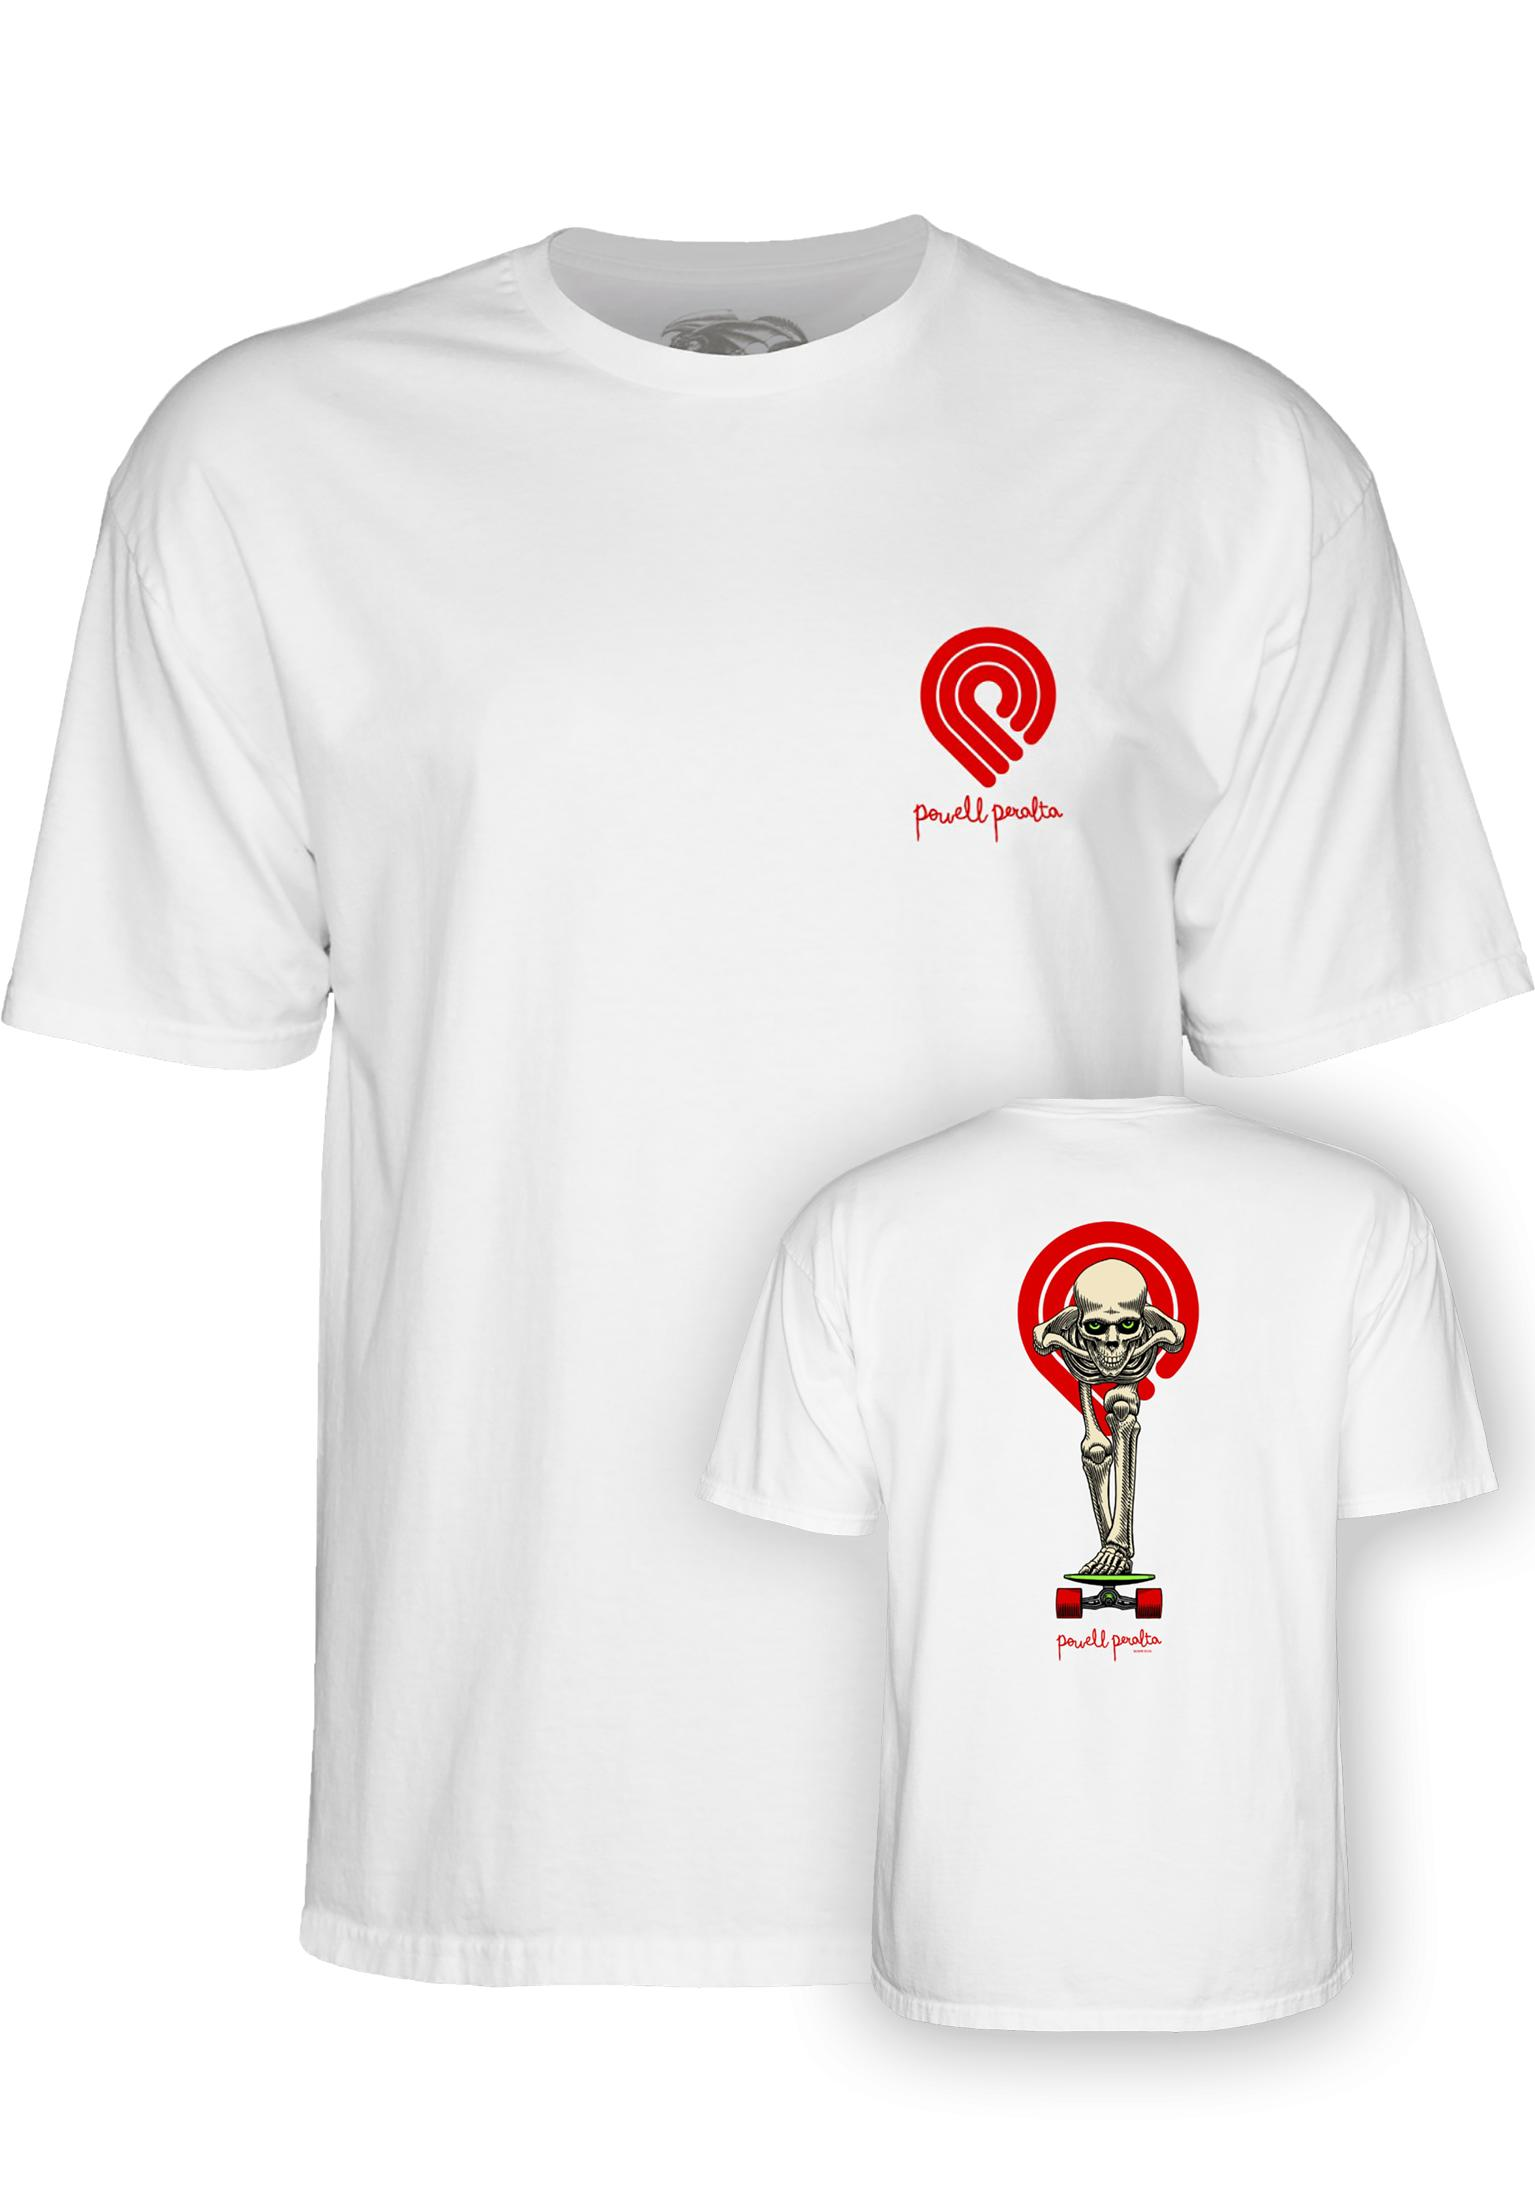 8ede08d4a Tucking Skeleton Powell-Peralta T-Shirts in white for Men   Titus